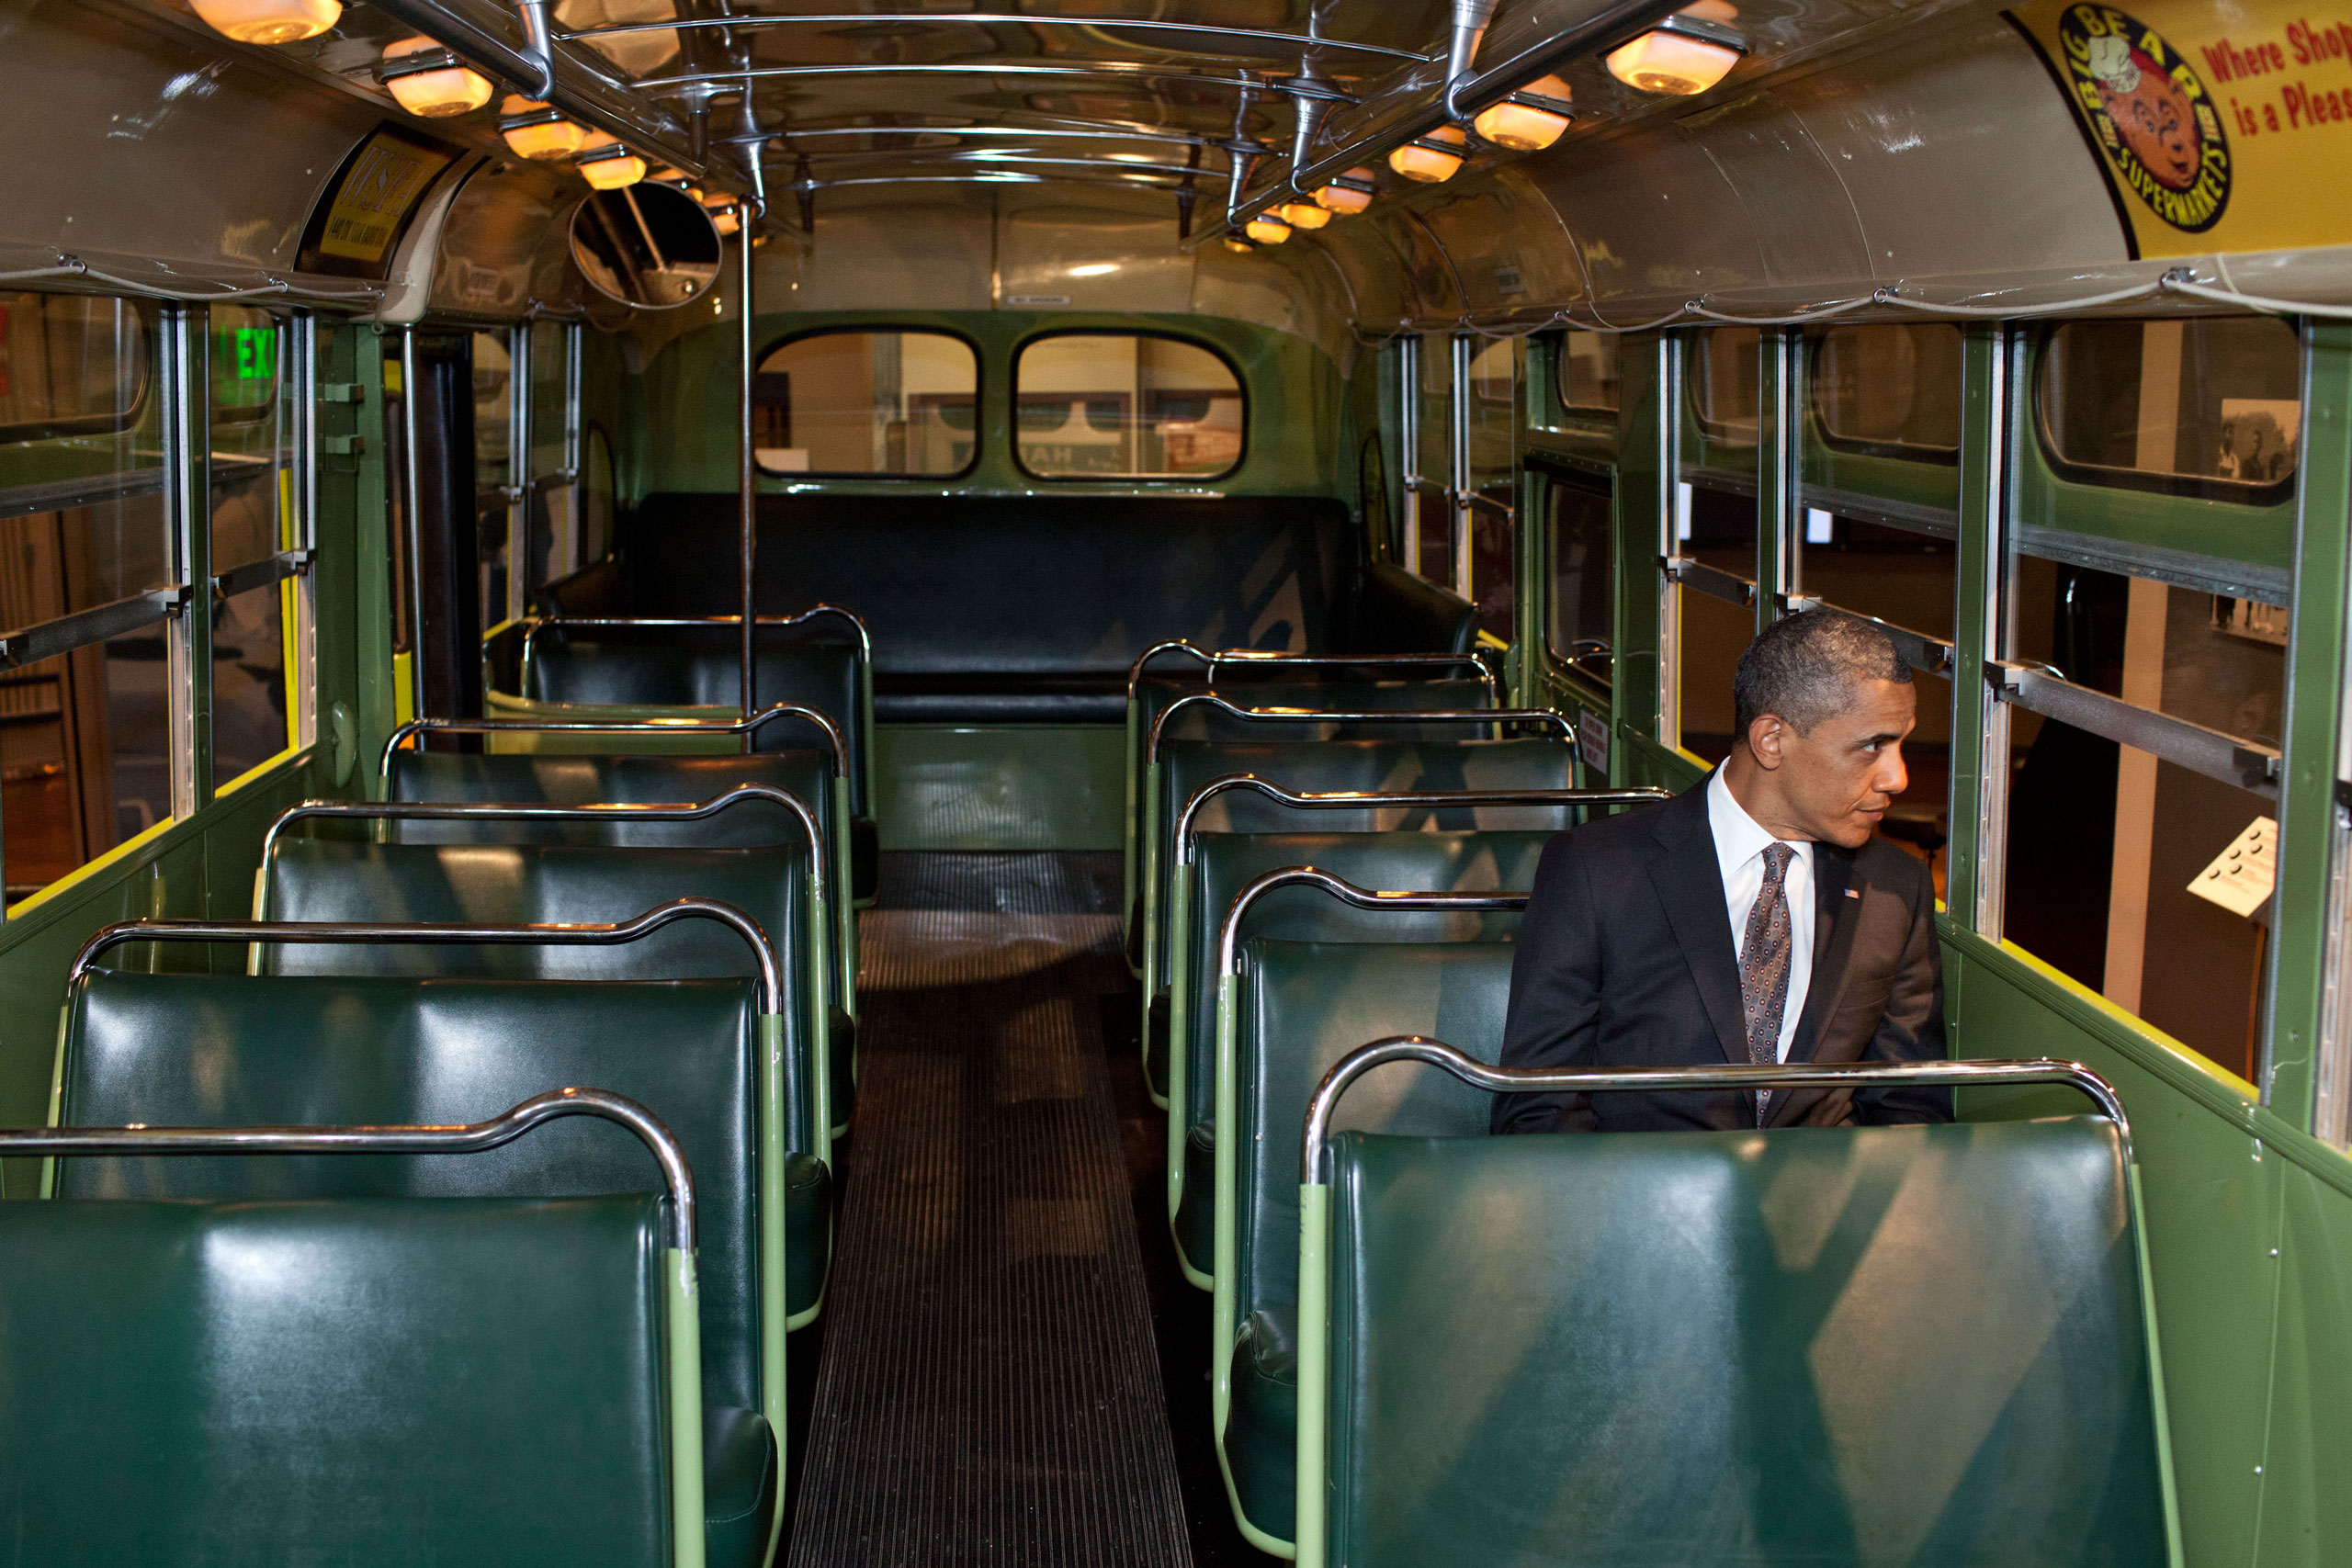 We were doing an event at the Henry Ford Museum in Dearborn, Mich. Before speaking, the President was looking at some of the automobiles and exhibits adjacent to the event, and before I knew what was happening he walked onto the famed Rosa Parks bus. He sat in one of the seats, looking out the window for only a few seconds.  April 18, 2012